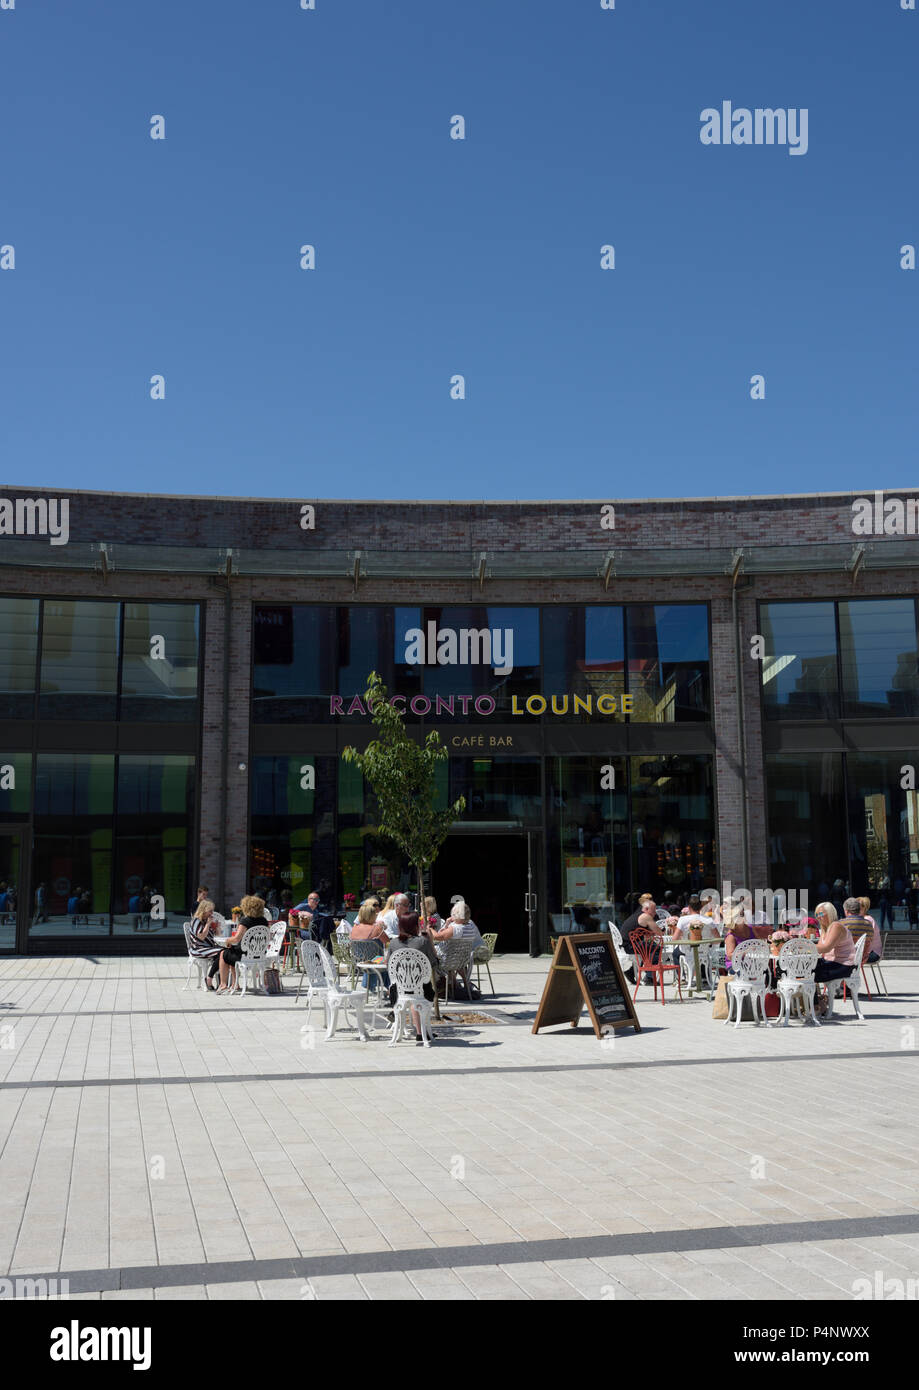 Racconto lounge, bar restaurant with people sitting outside at tables in the sunshine in bury lancashire uk - Stock Image